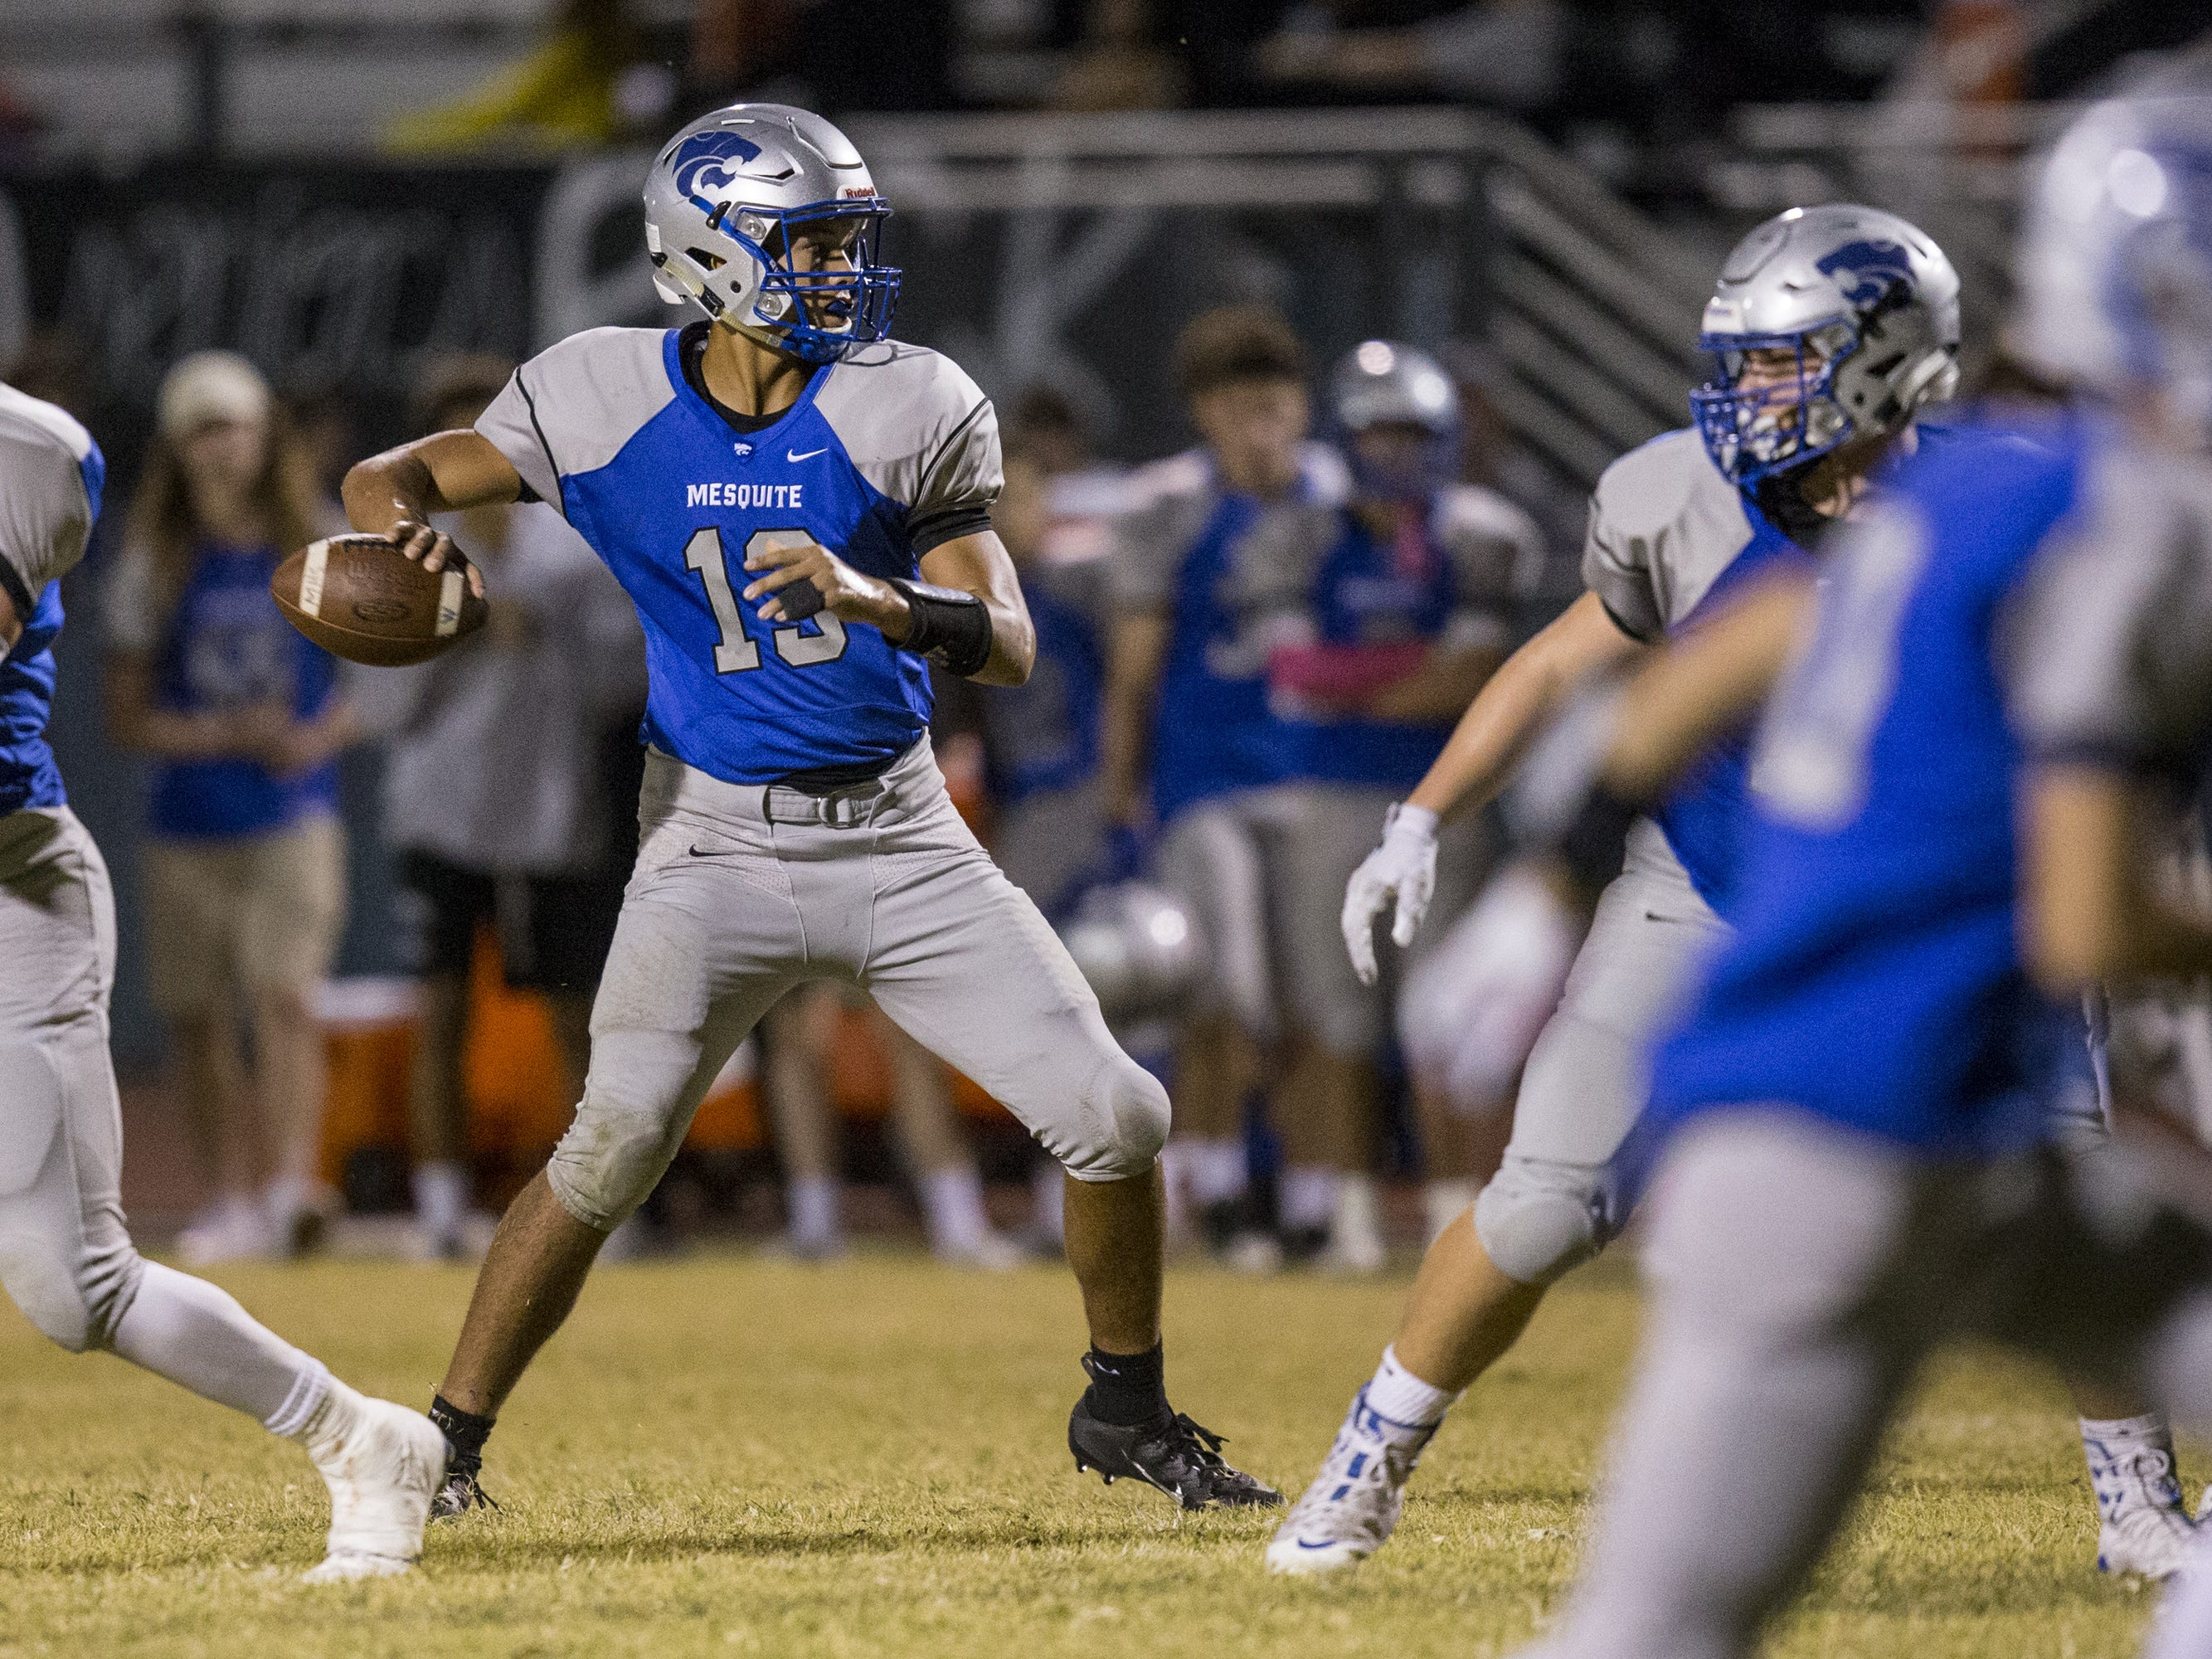 Mesquite's Ty Thompson throws against Saguaro in the second half on Friday, Oct. 26, 2018, at Mesquite High School in Gilbert, Ariz.  #azhsb